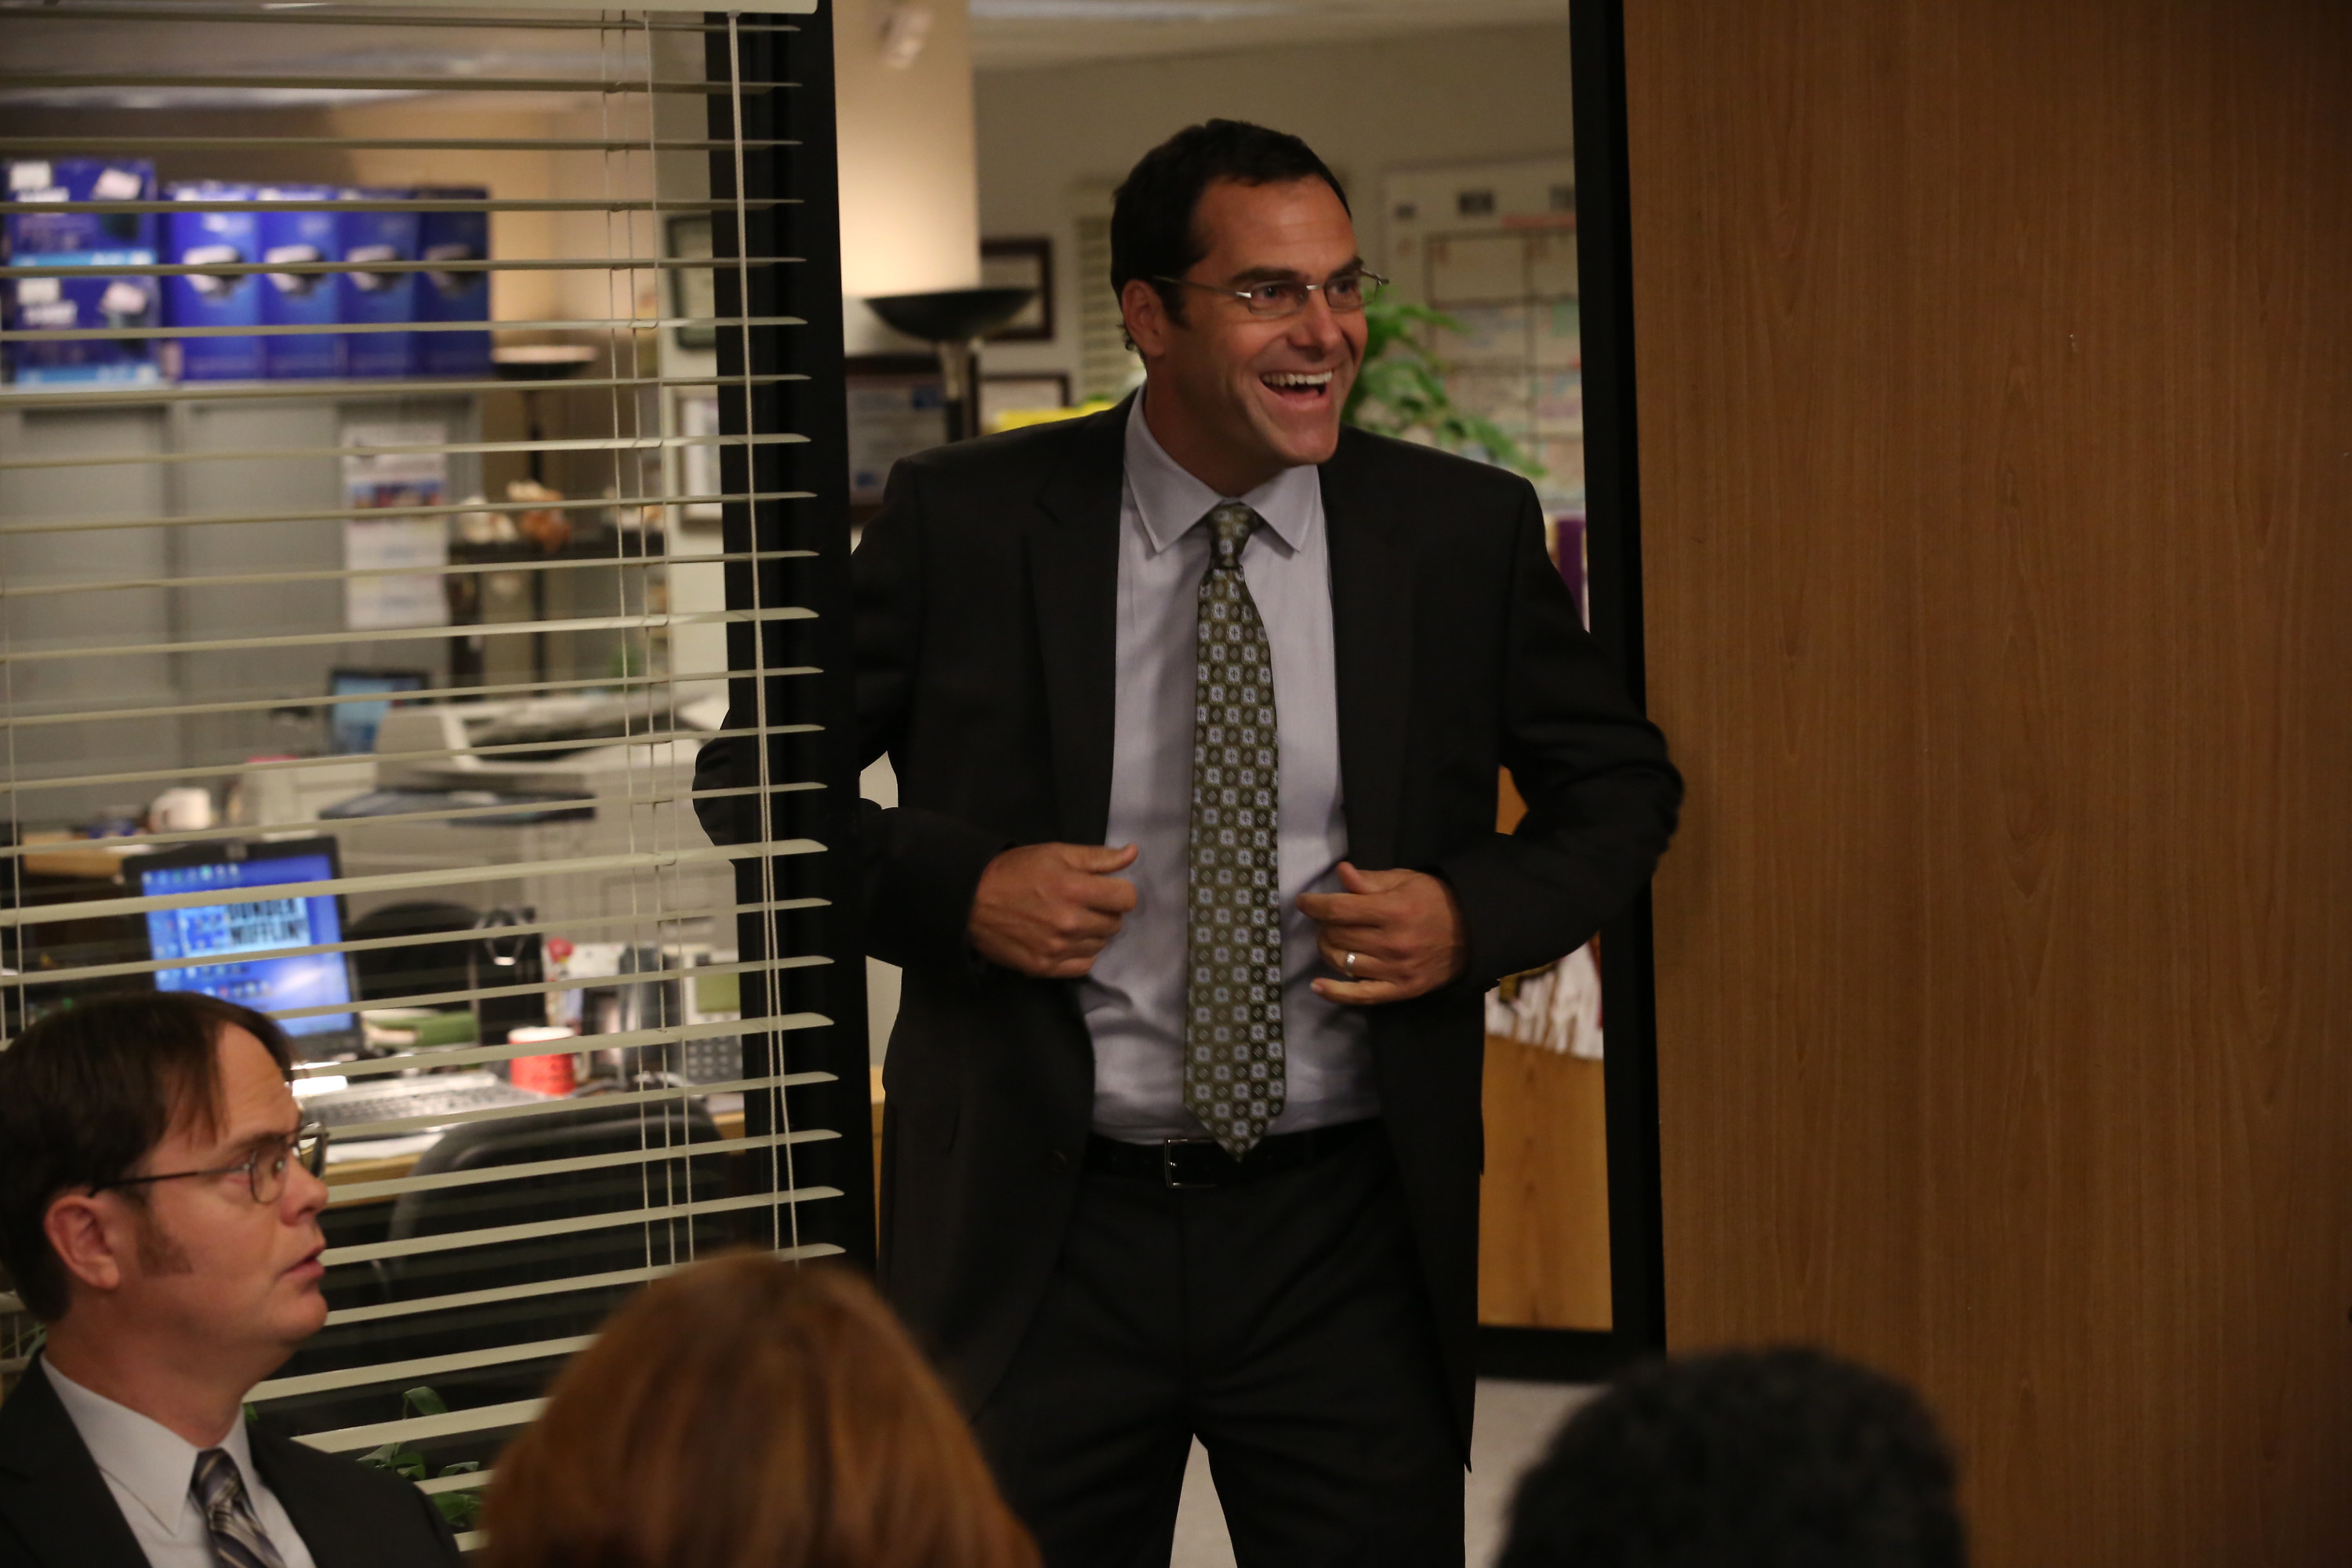 Andy Buckley as David Wallace on The Office